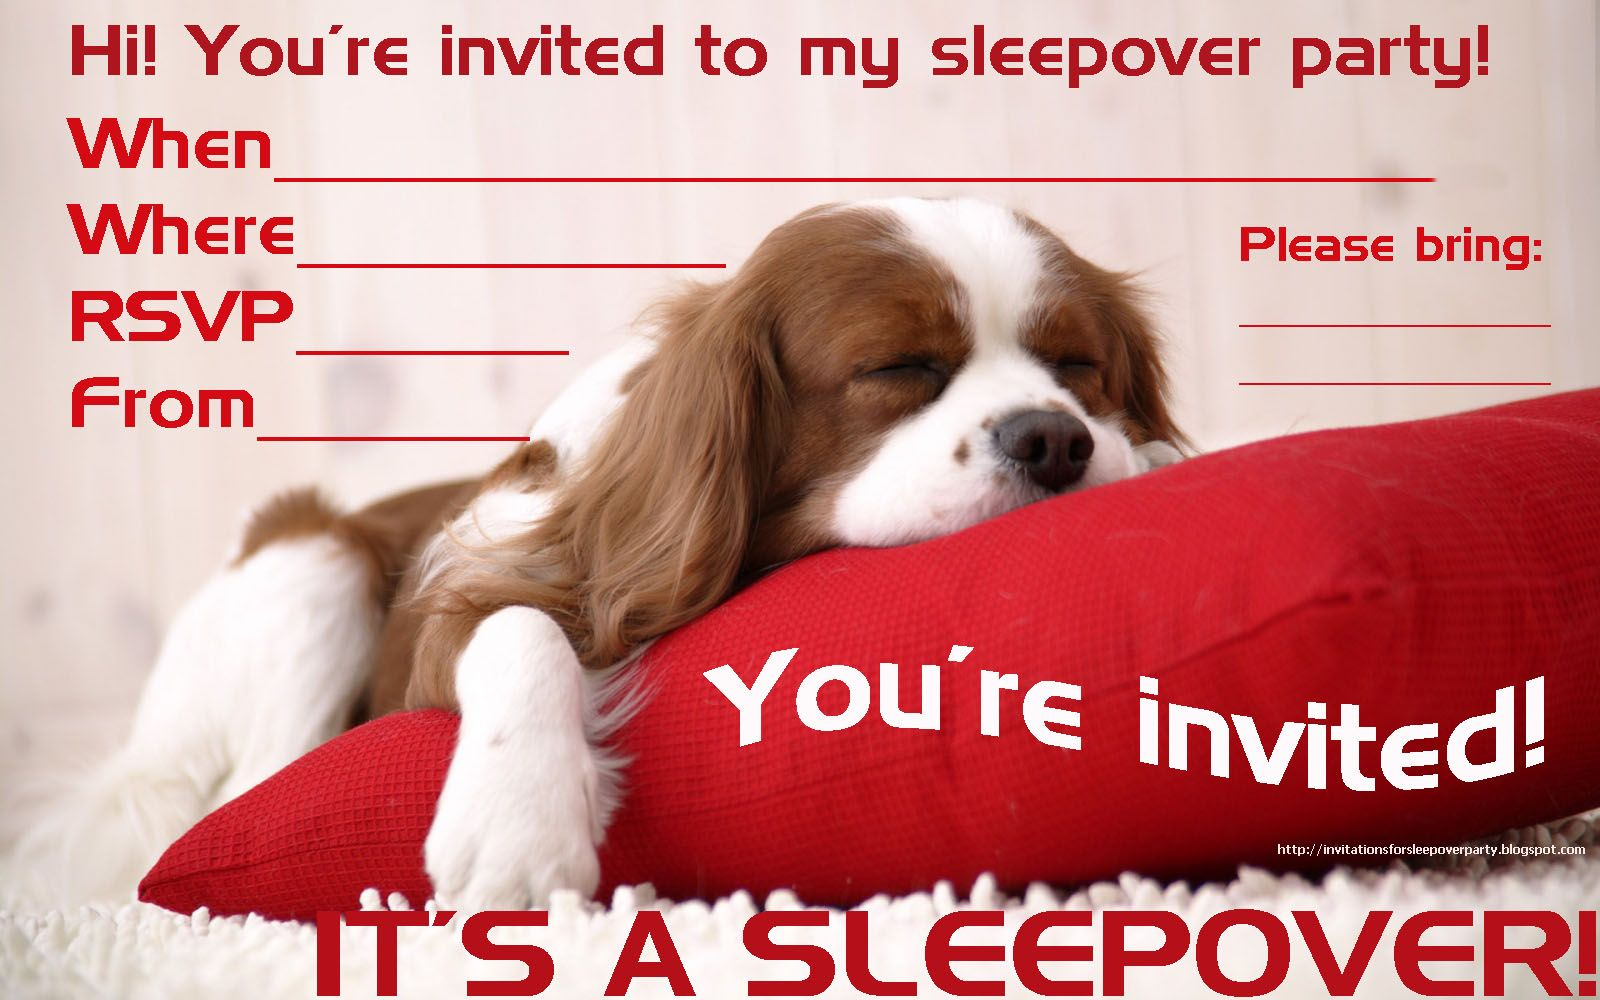 girl sleepover party invitations - Google Search | Frankie\'s party ...